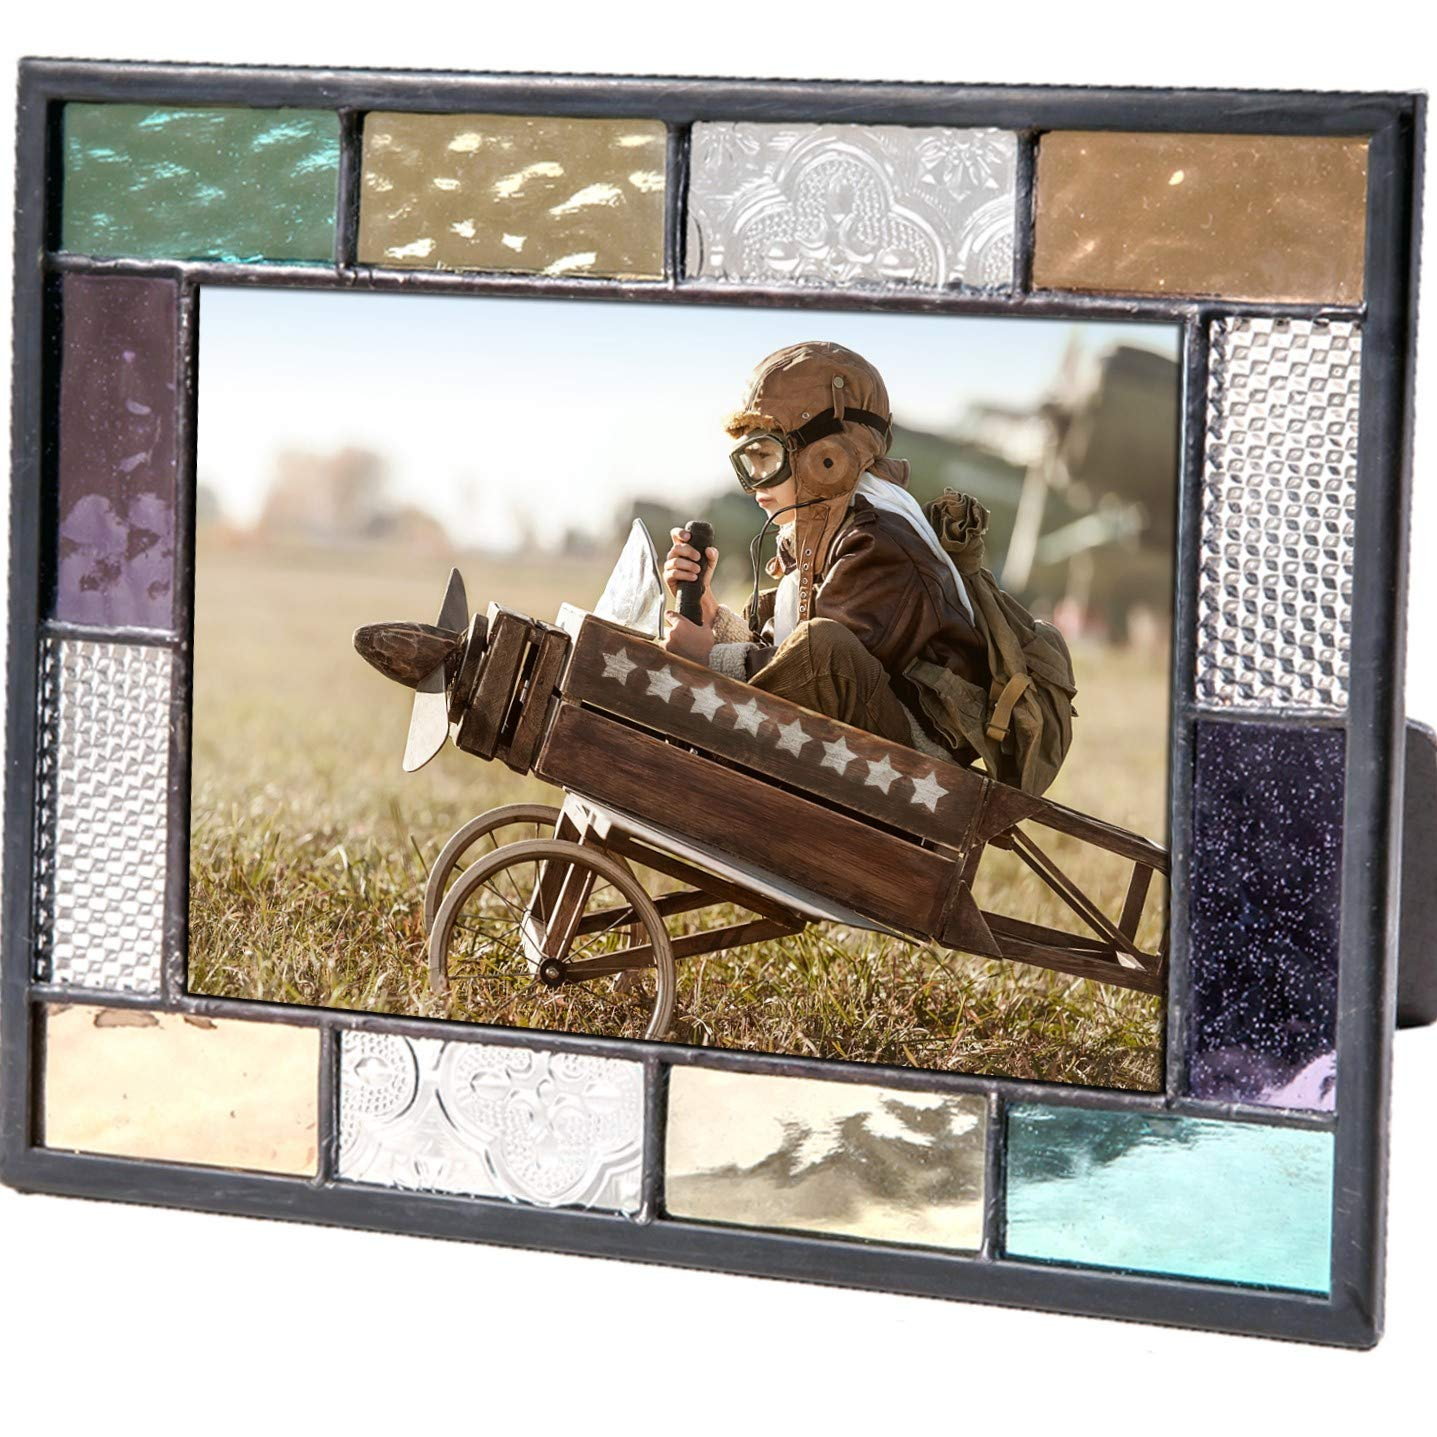 Stained Glass Picture Frame 4x6 Photo Display Easel Back Colorful Home Decor Blue Green Purple Amber Clear Gift Men Women J Devlin Pic 386-46HV